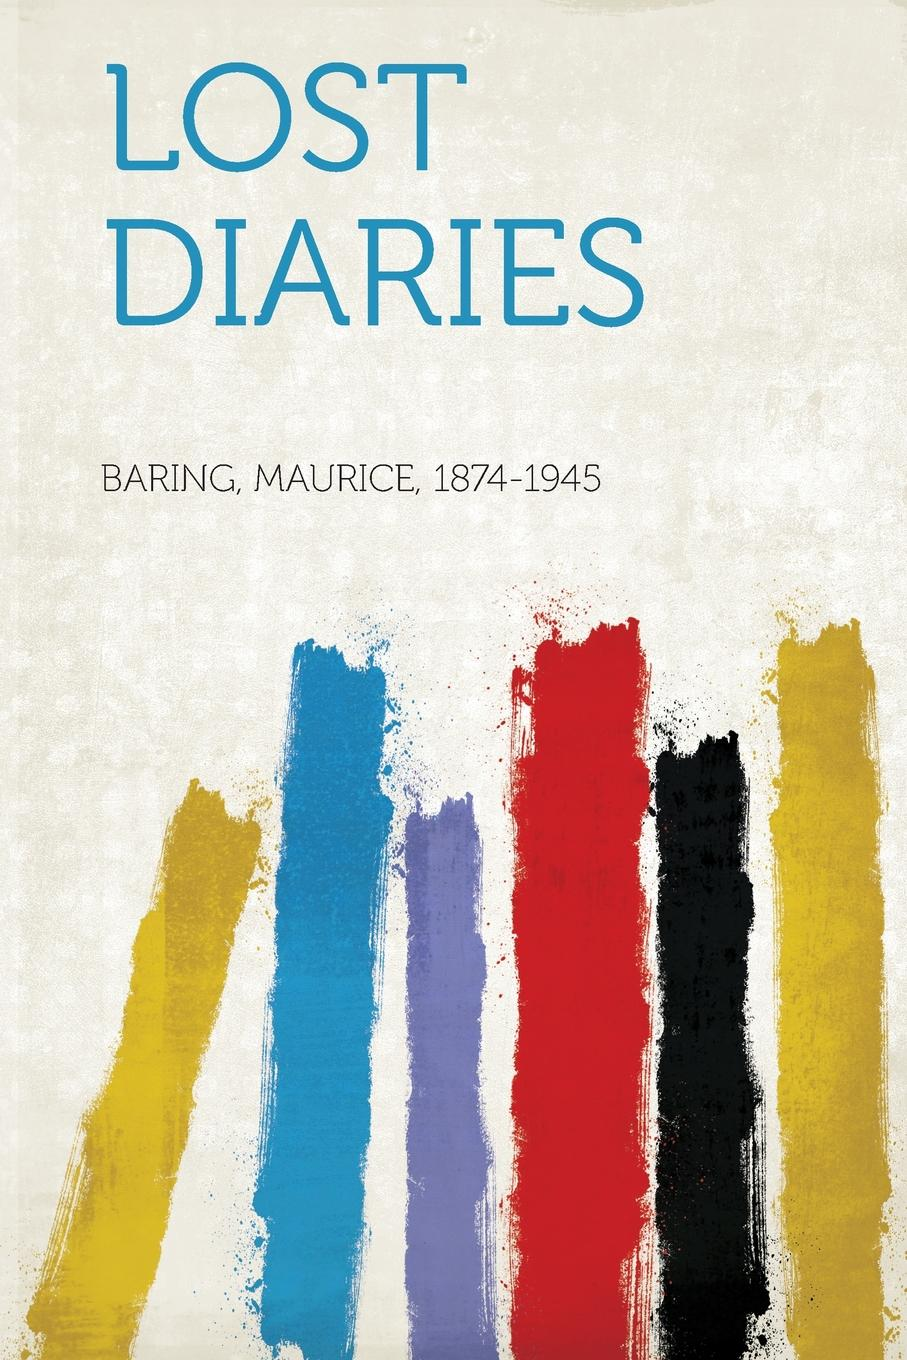 Baring Maurice 1874-1945 Lost Diaries